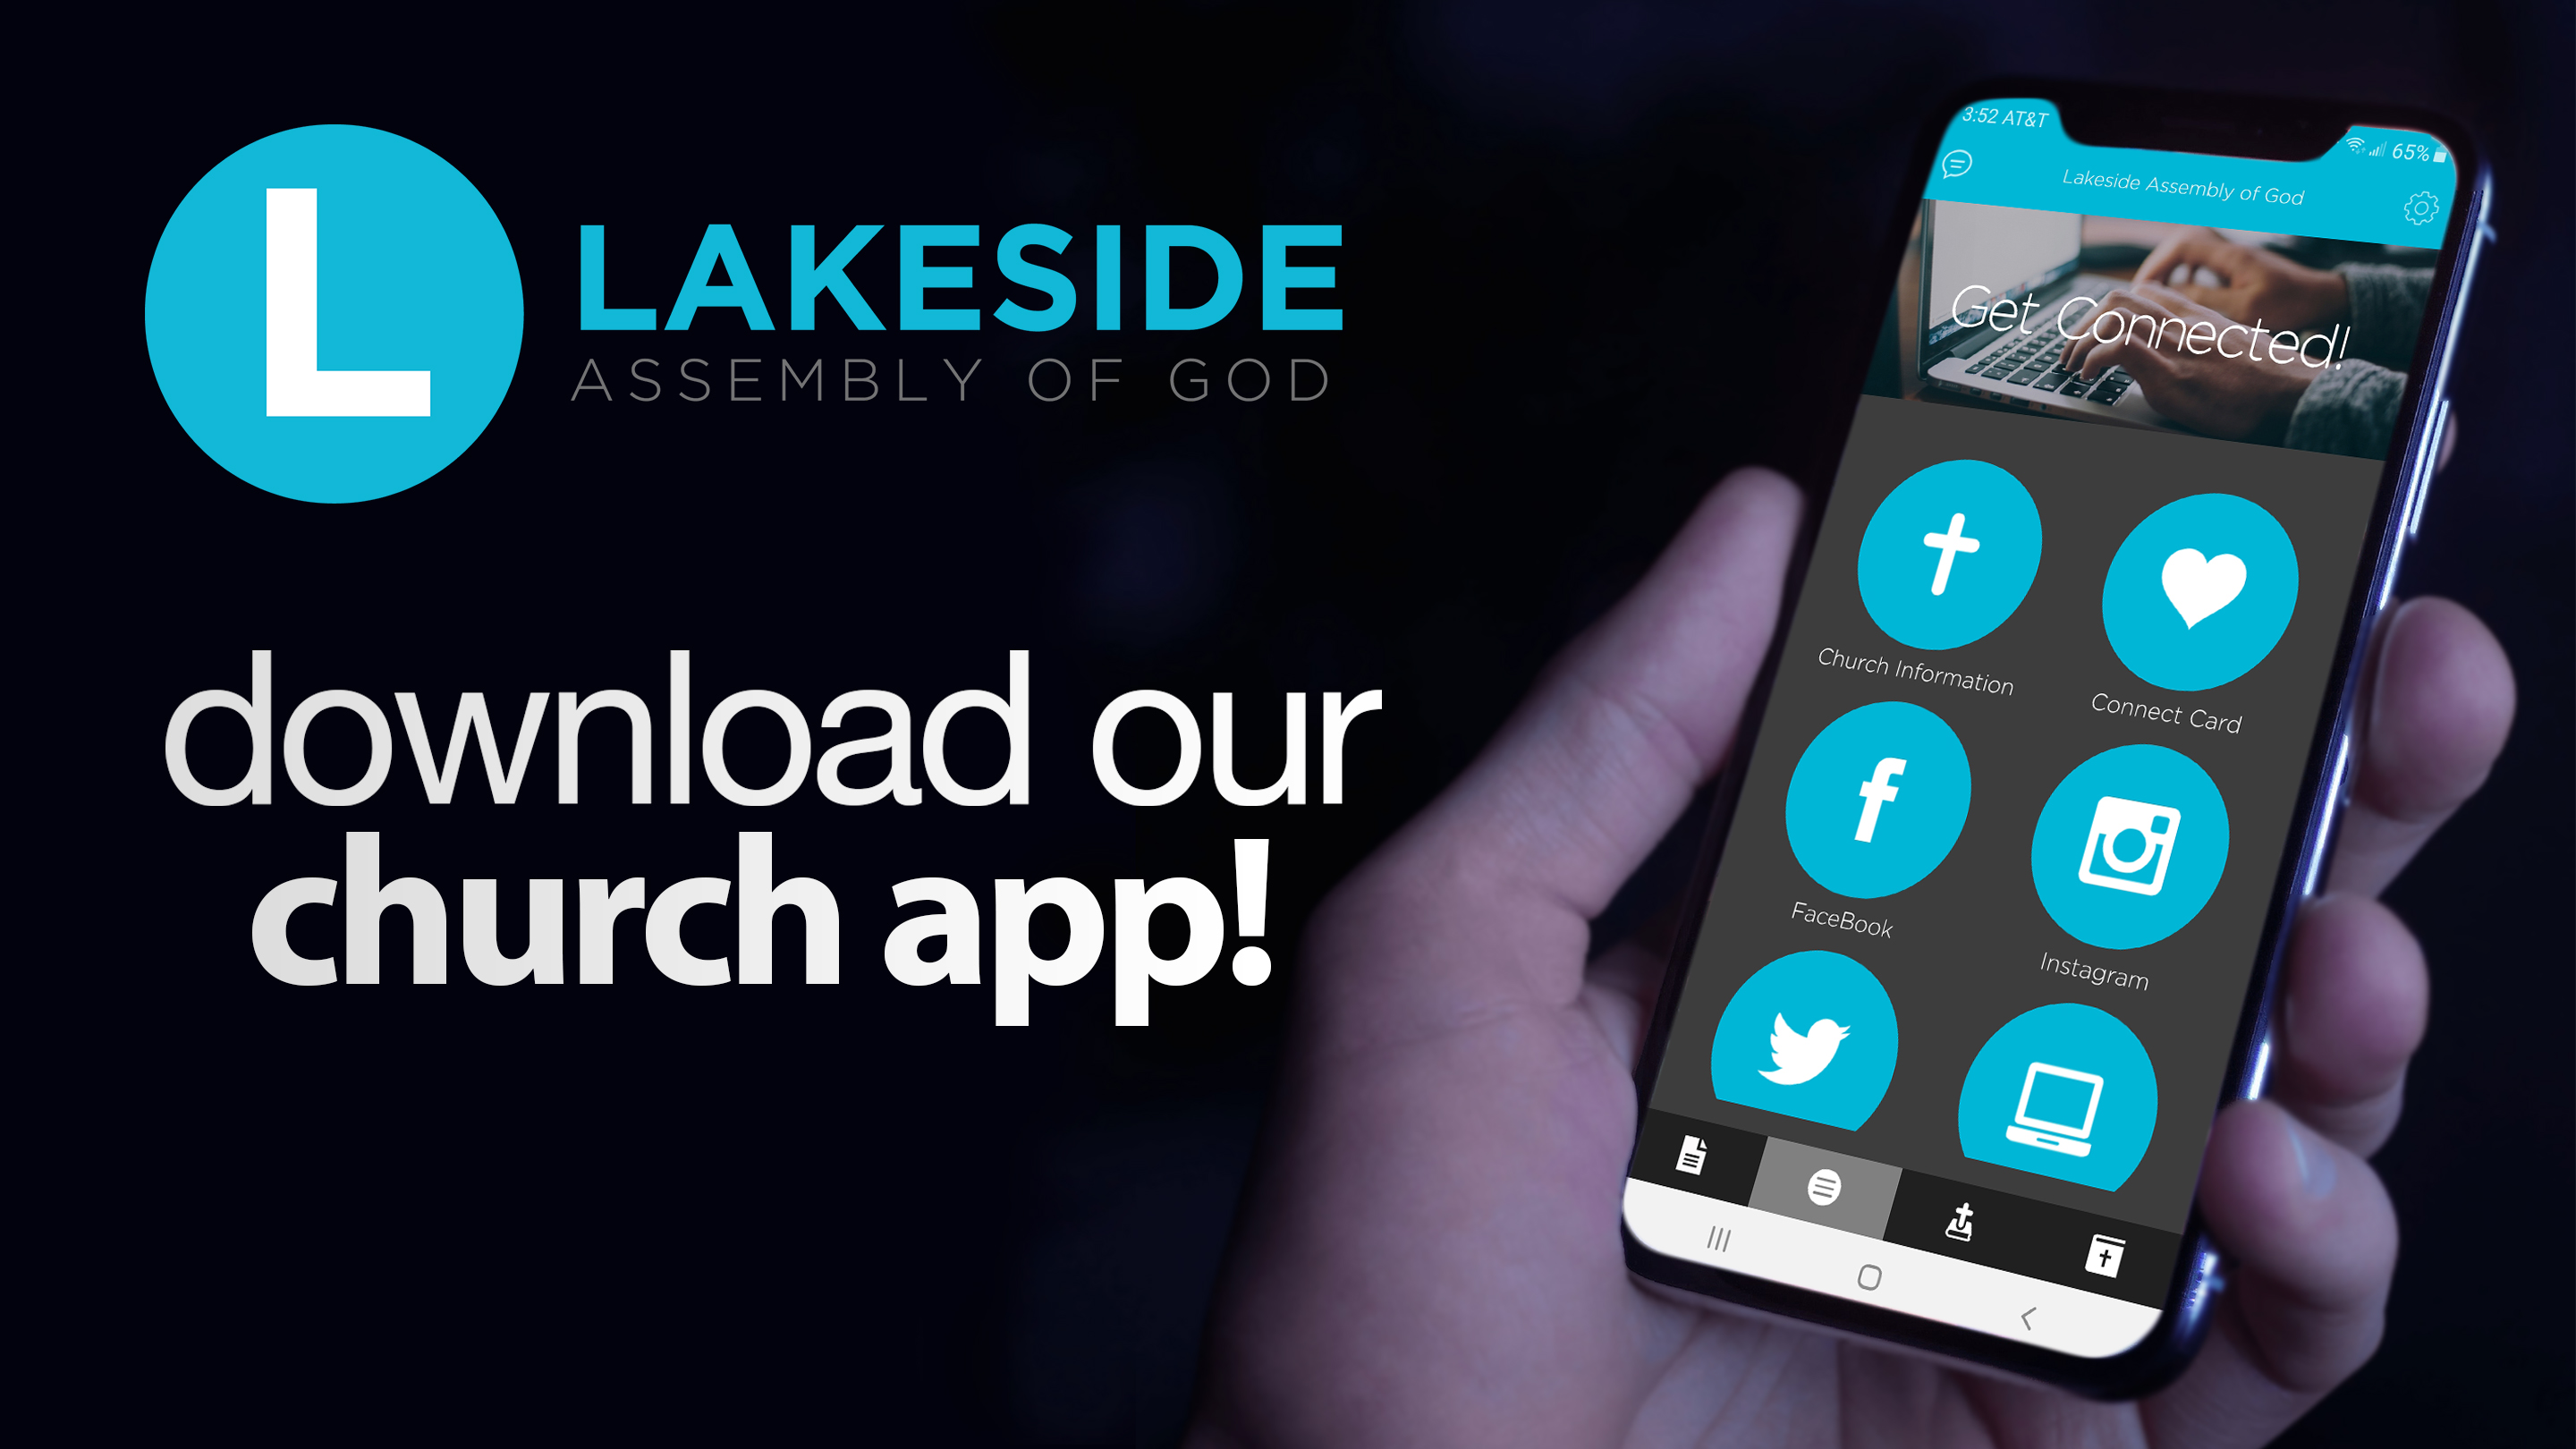 Download our church app - slide